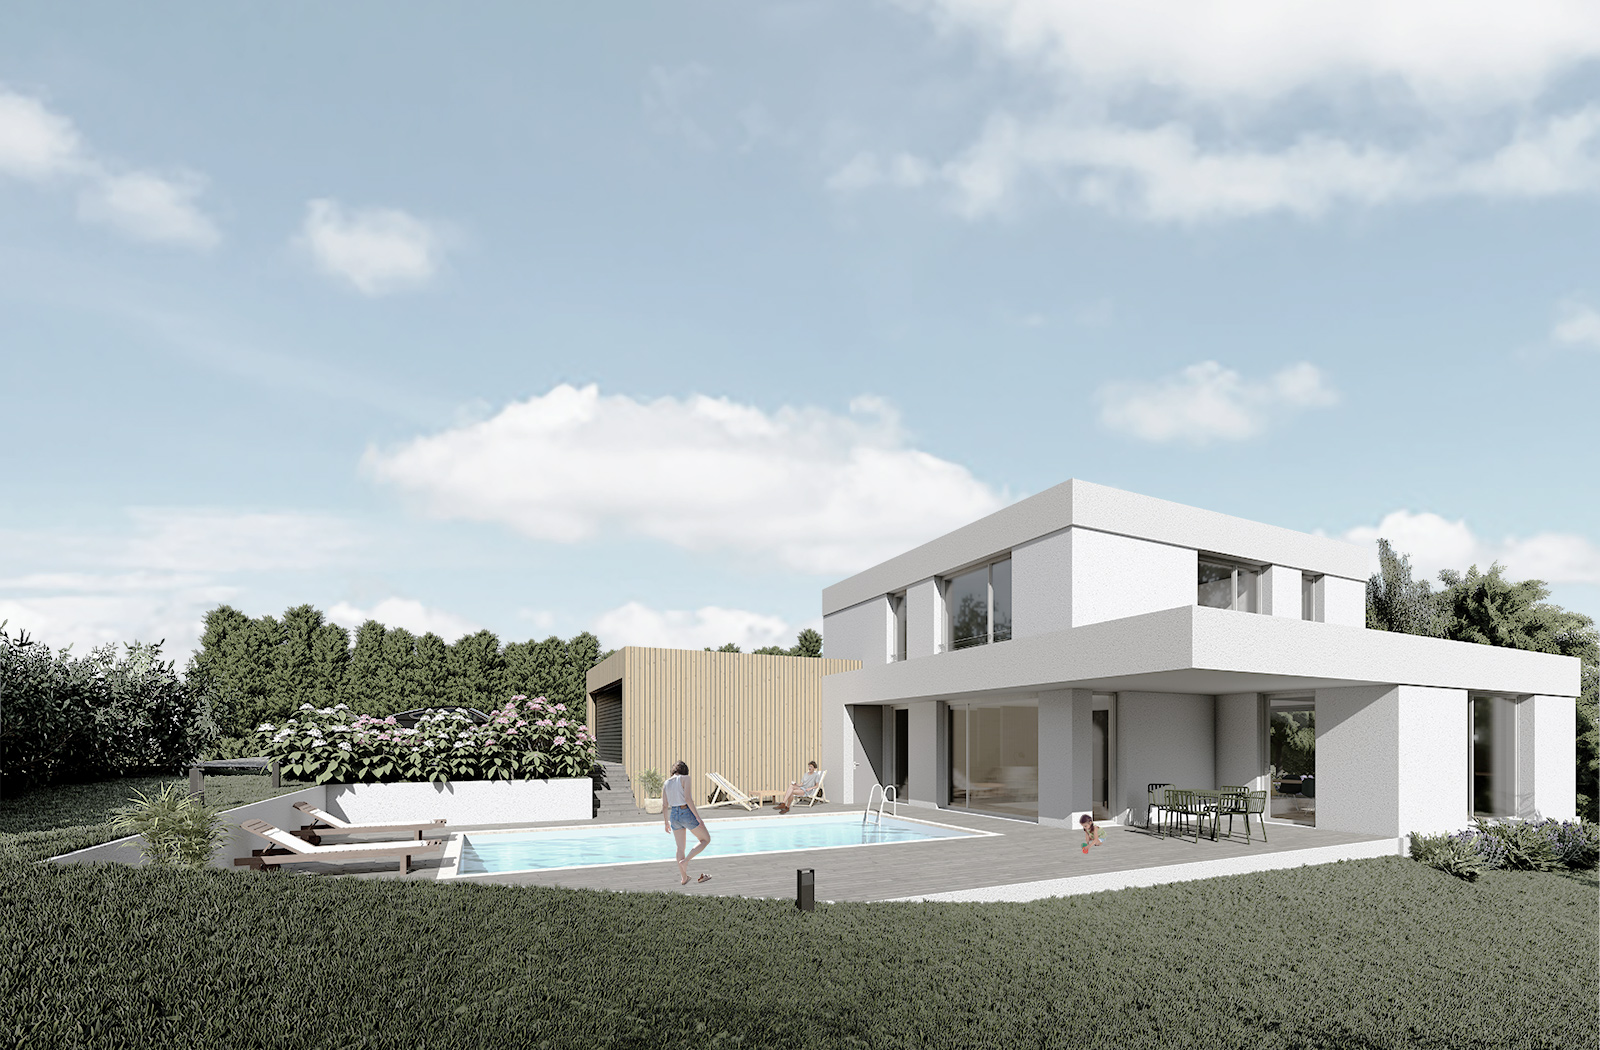 Formidable Architecte - Projet - villa Serpoly - 2